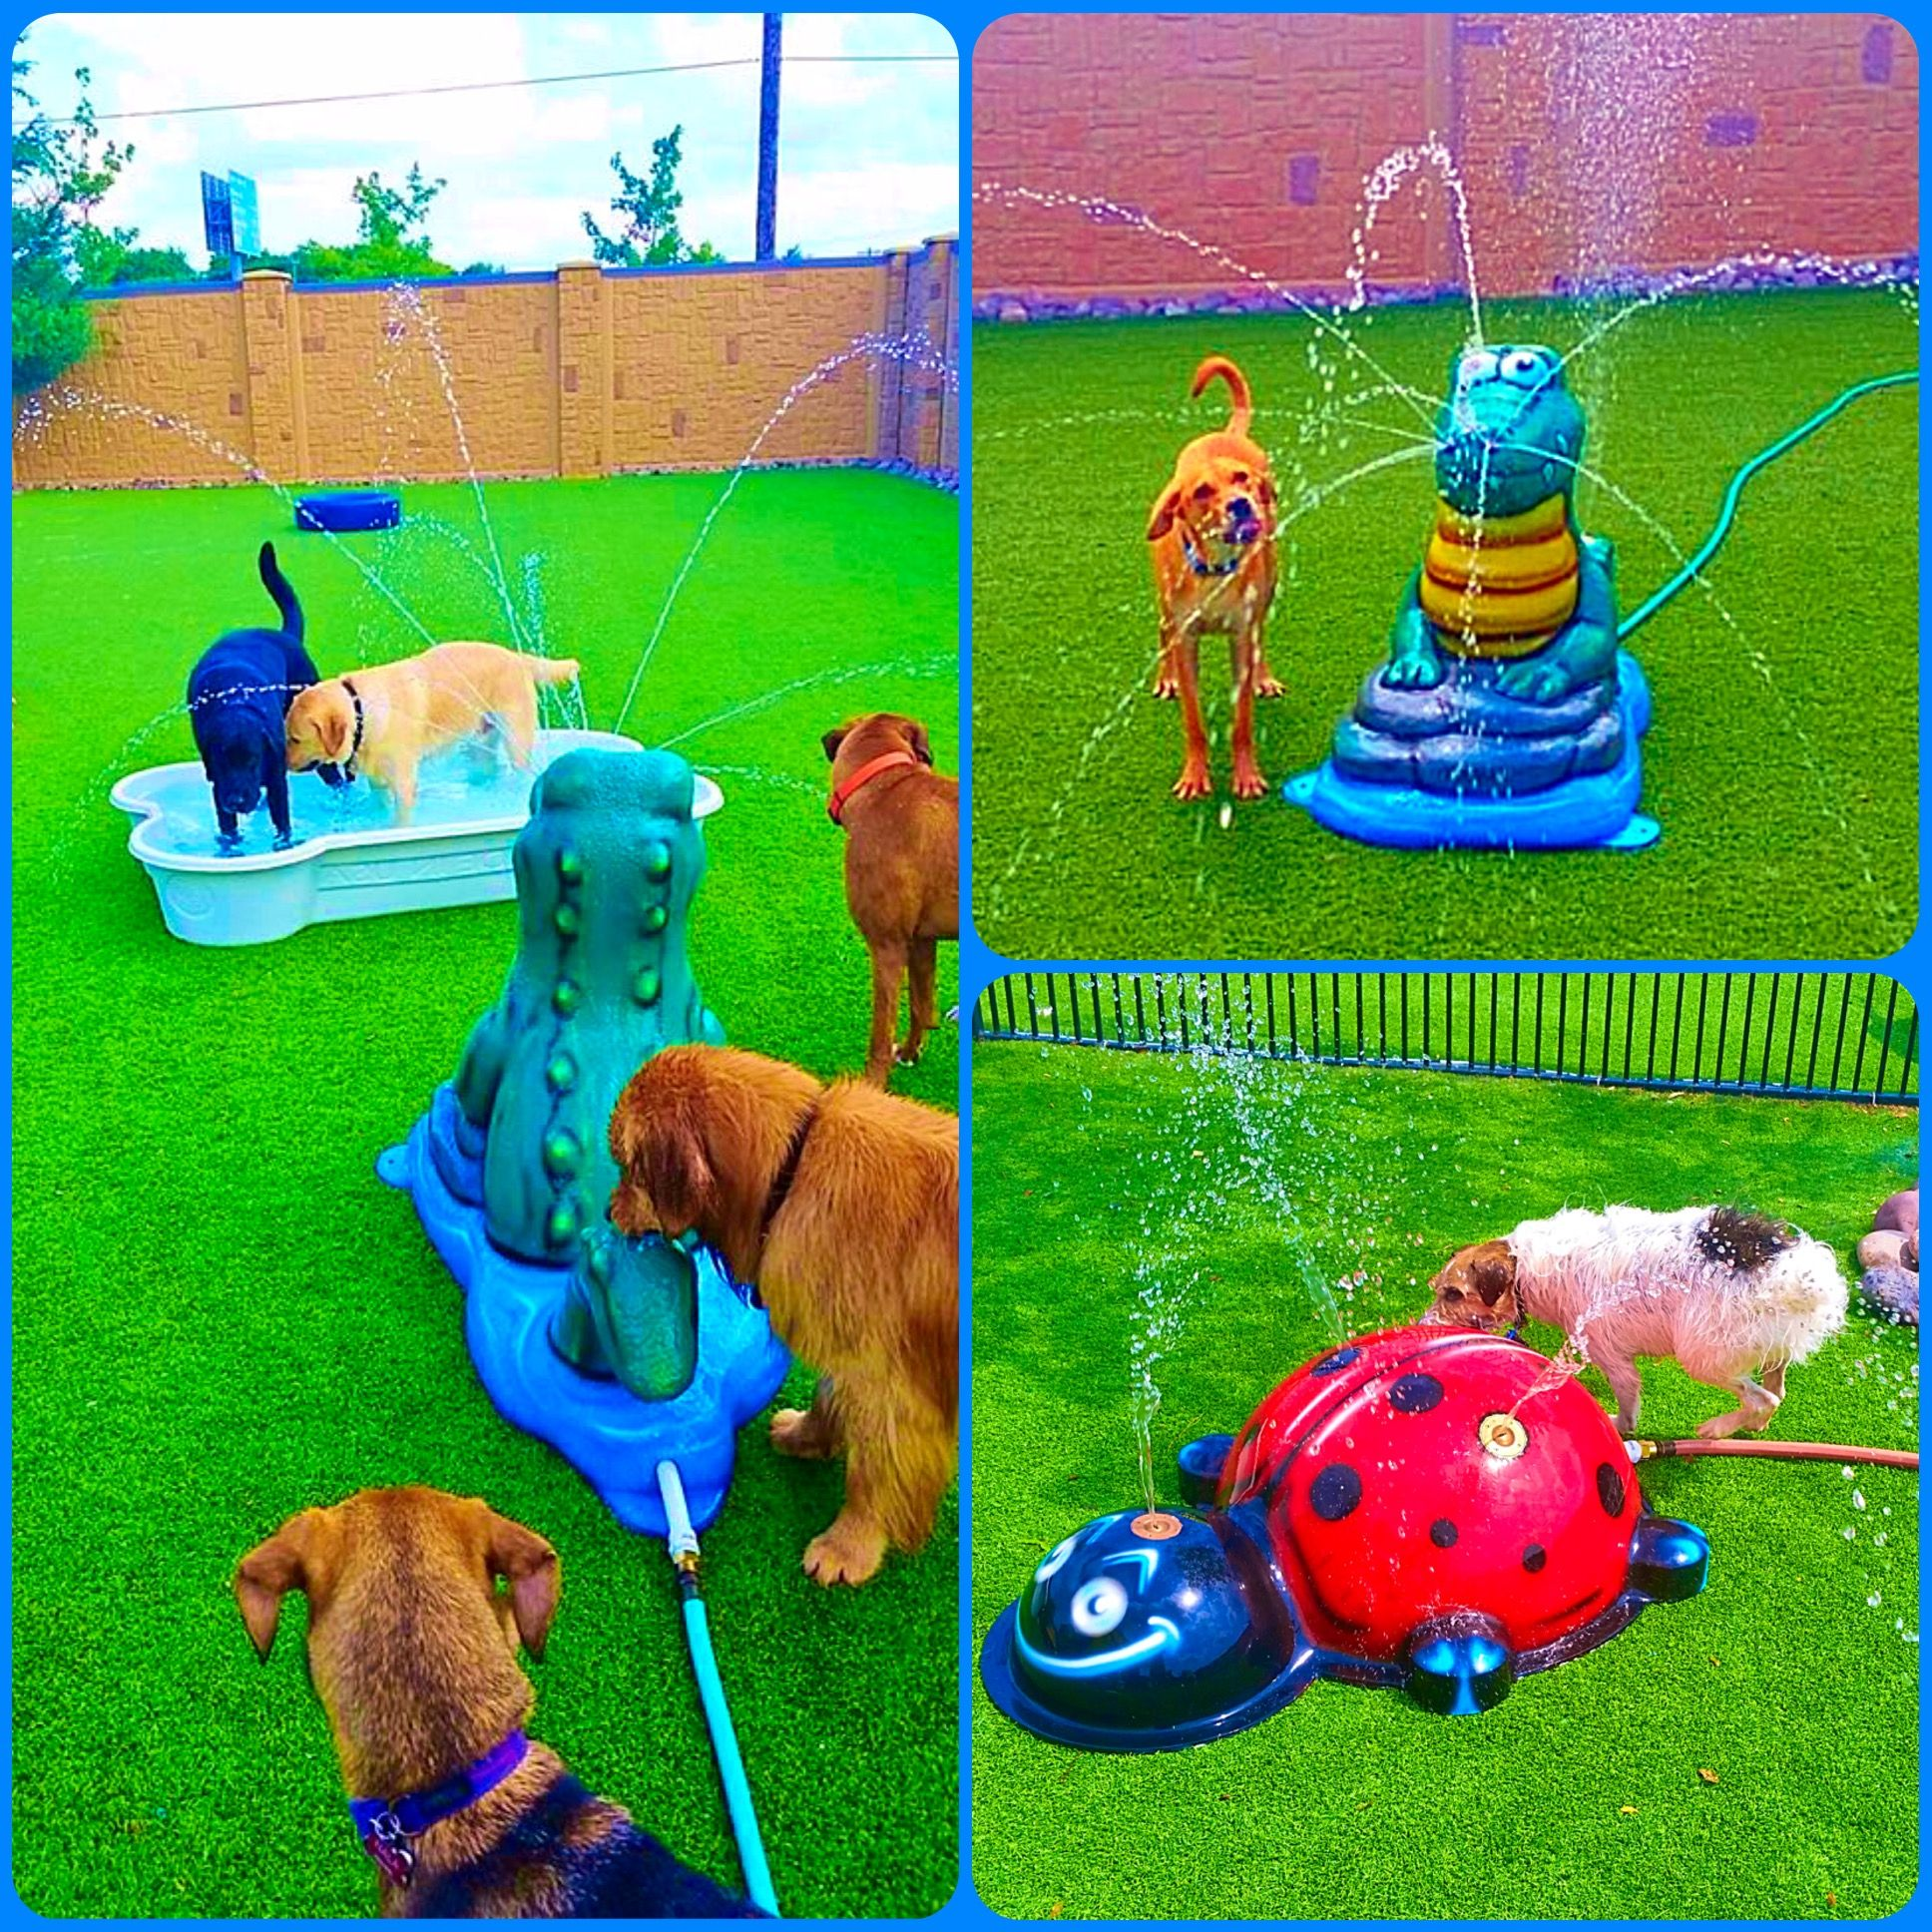 The Four Legged Kids Love The Mobile And Portable Splash Pad Line Too. Just